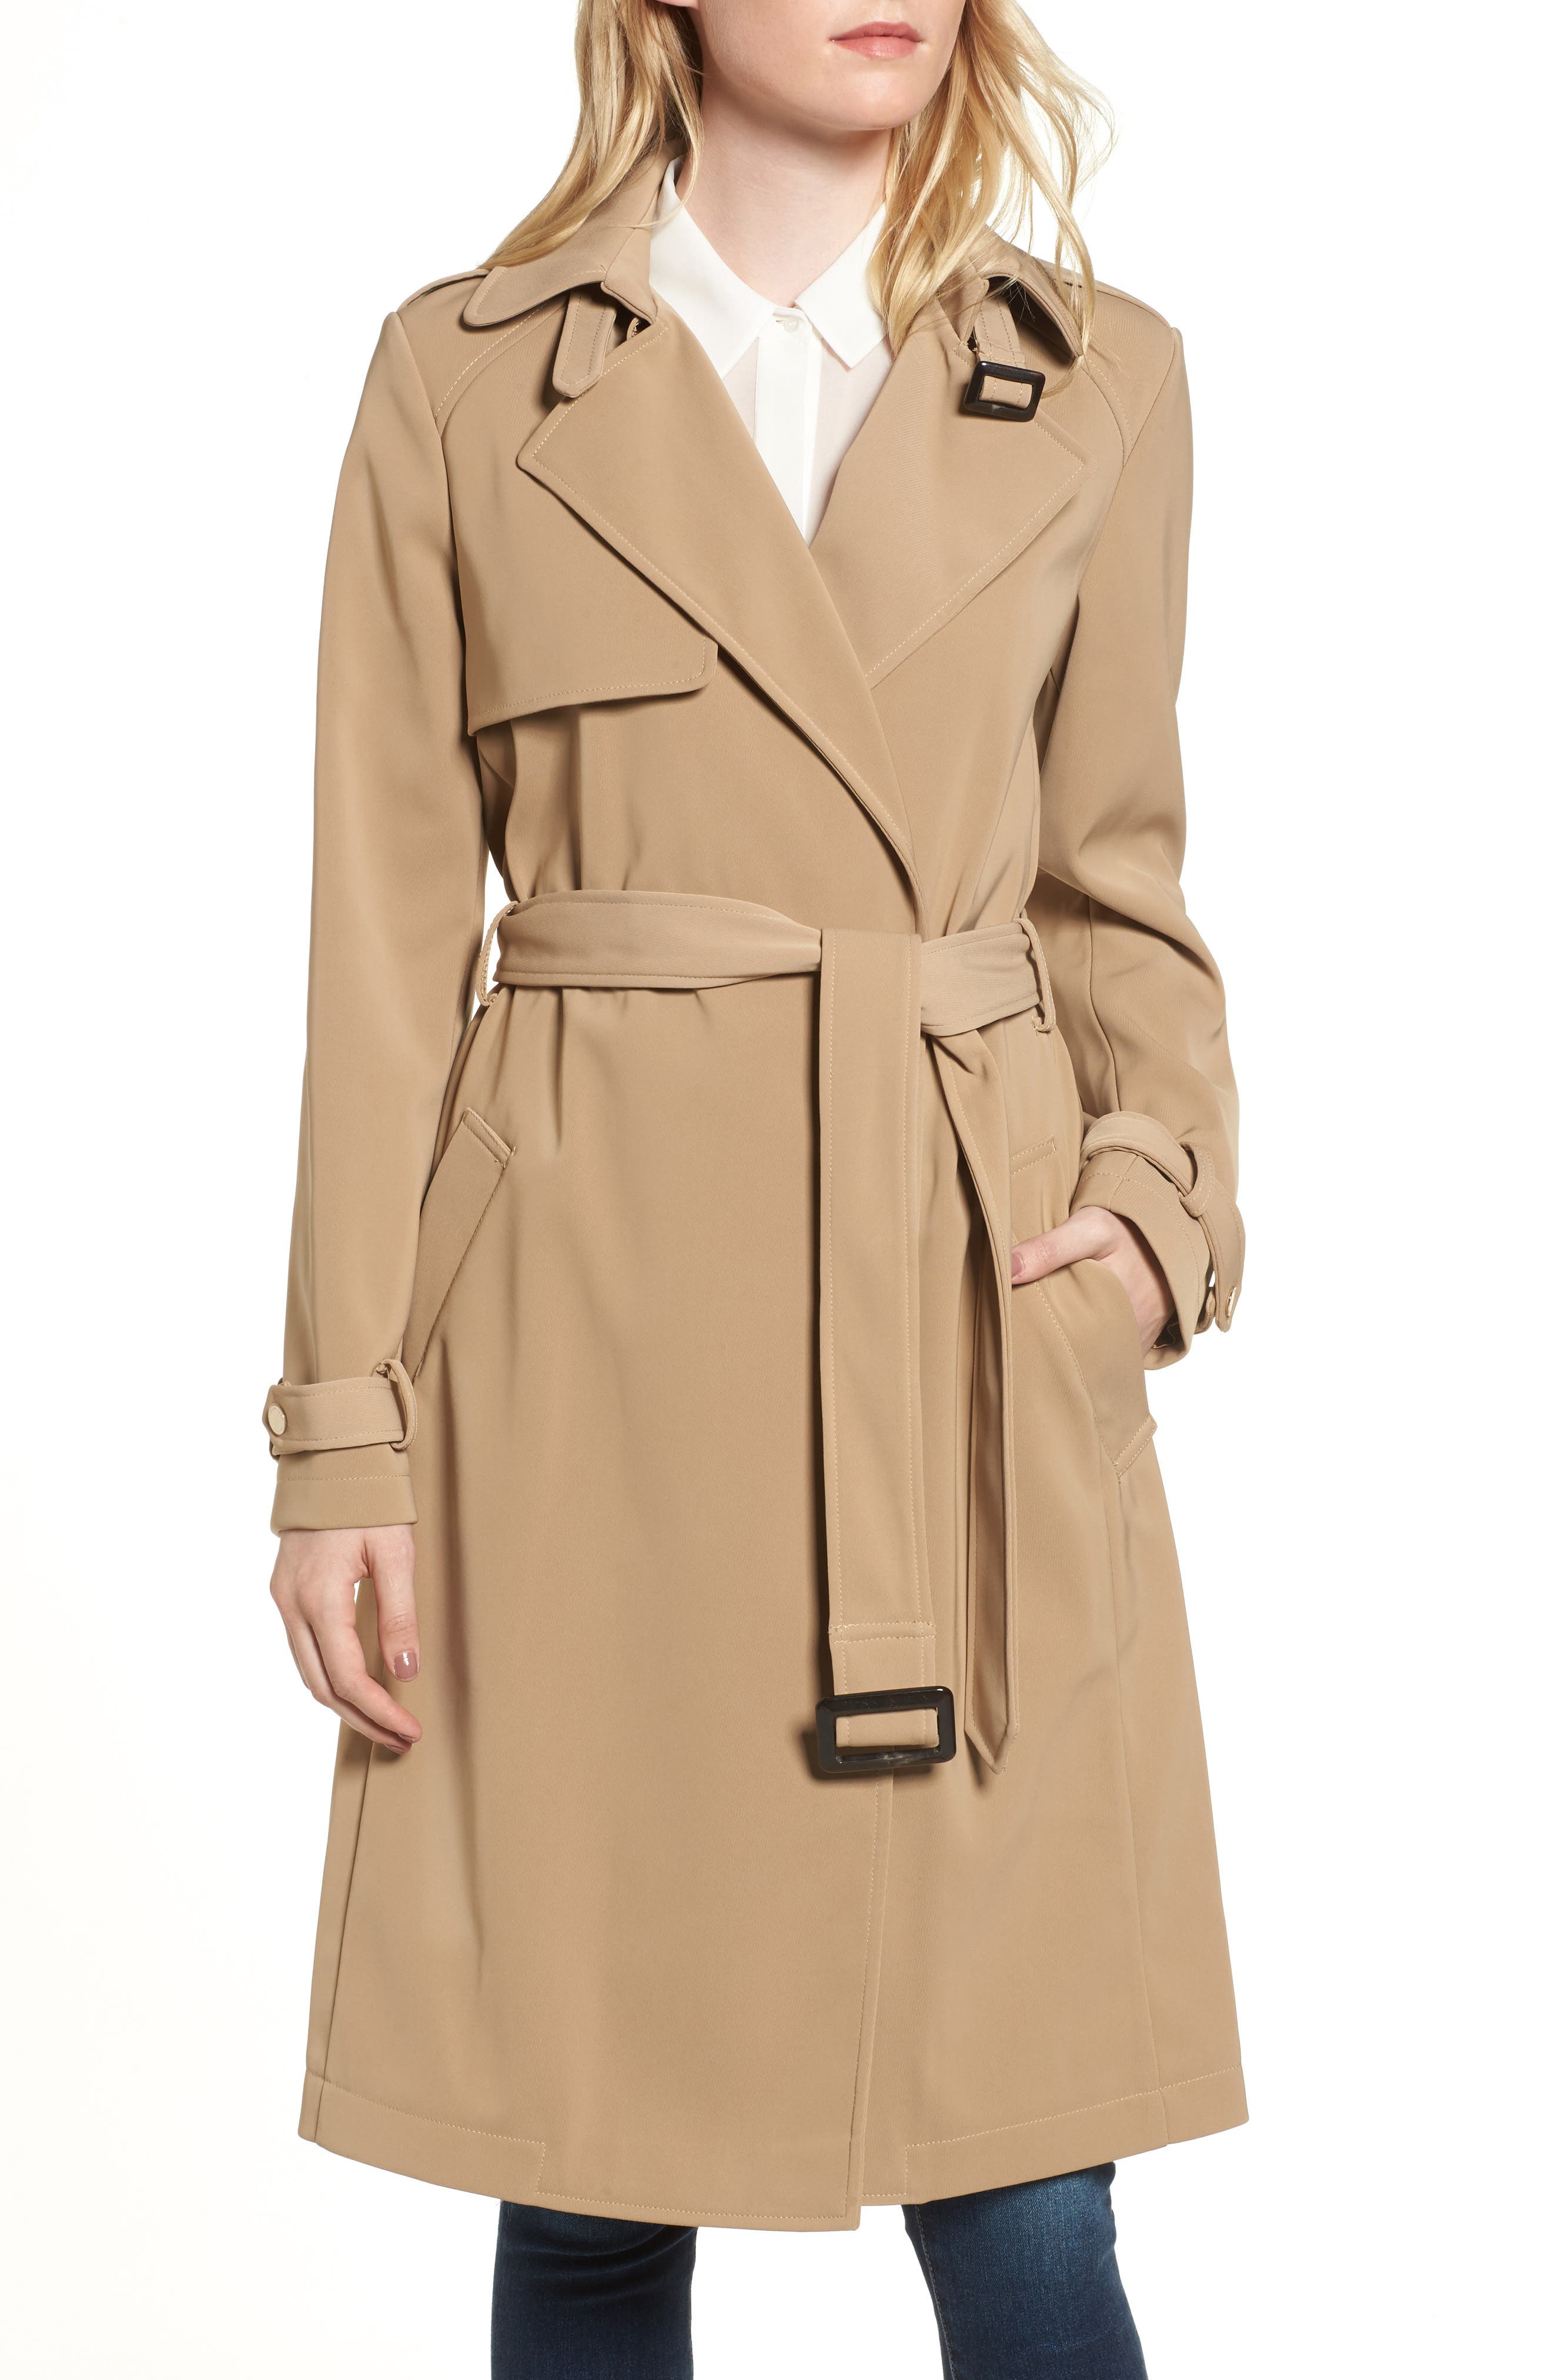 DKNY French Twill Water Resistant Trench Coat,                             Alternate thumbnail 8, color,